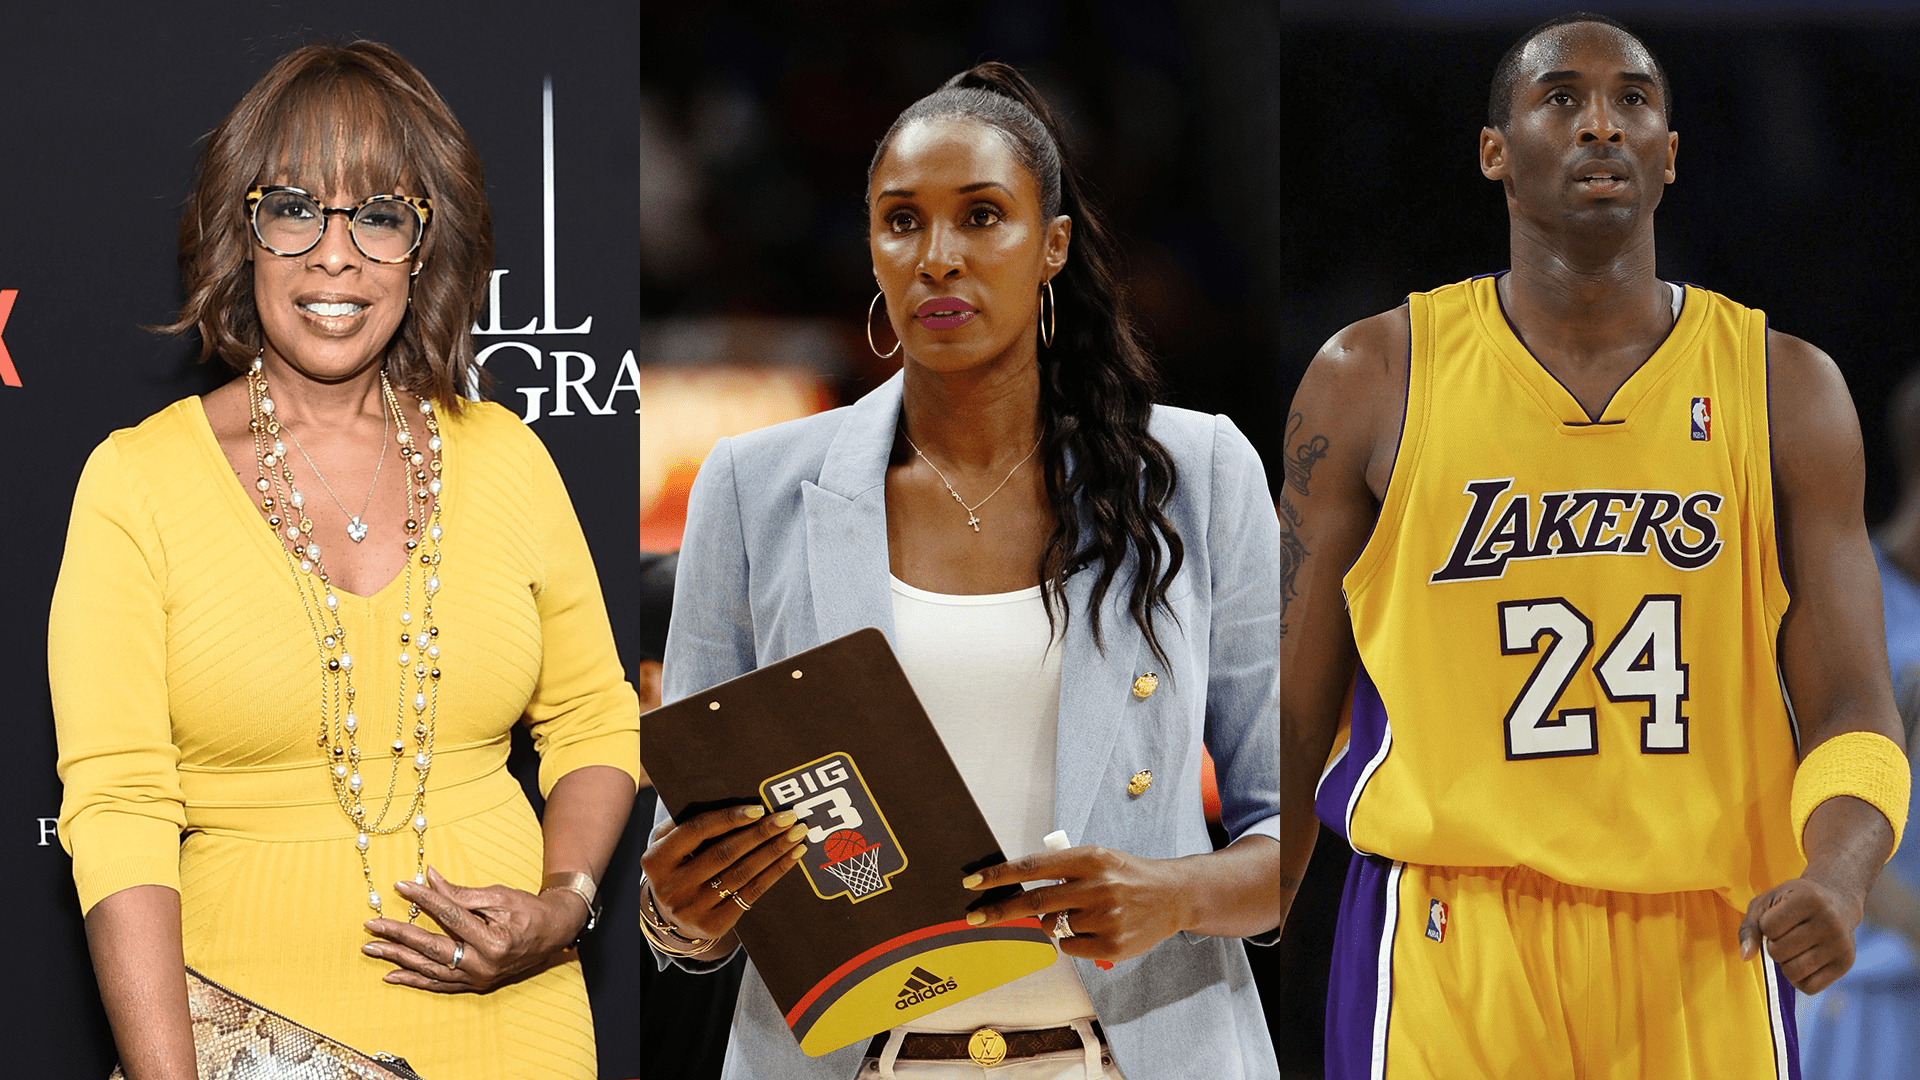 """""""gayle-king-slams-cbs-after-being-dragged-by-social-media-for-bringing-up-kobe-bryant-rape-case-during-interview-with-lisa-leslie"""""""